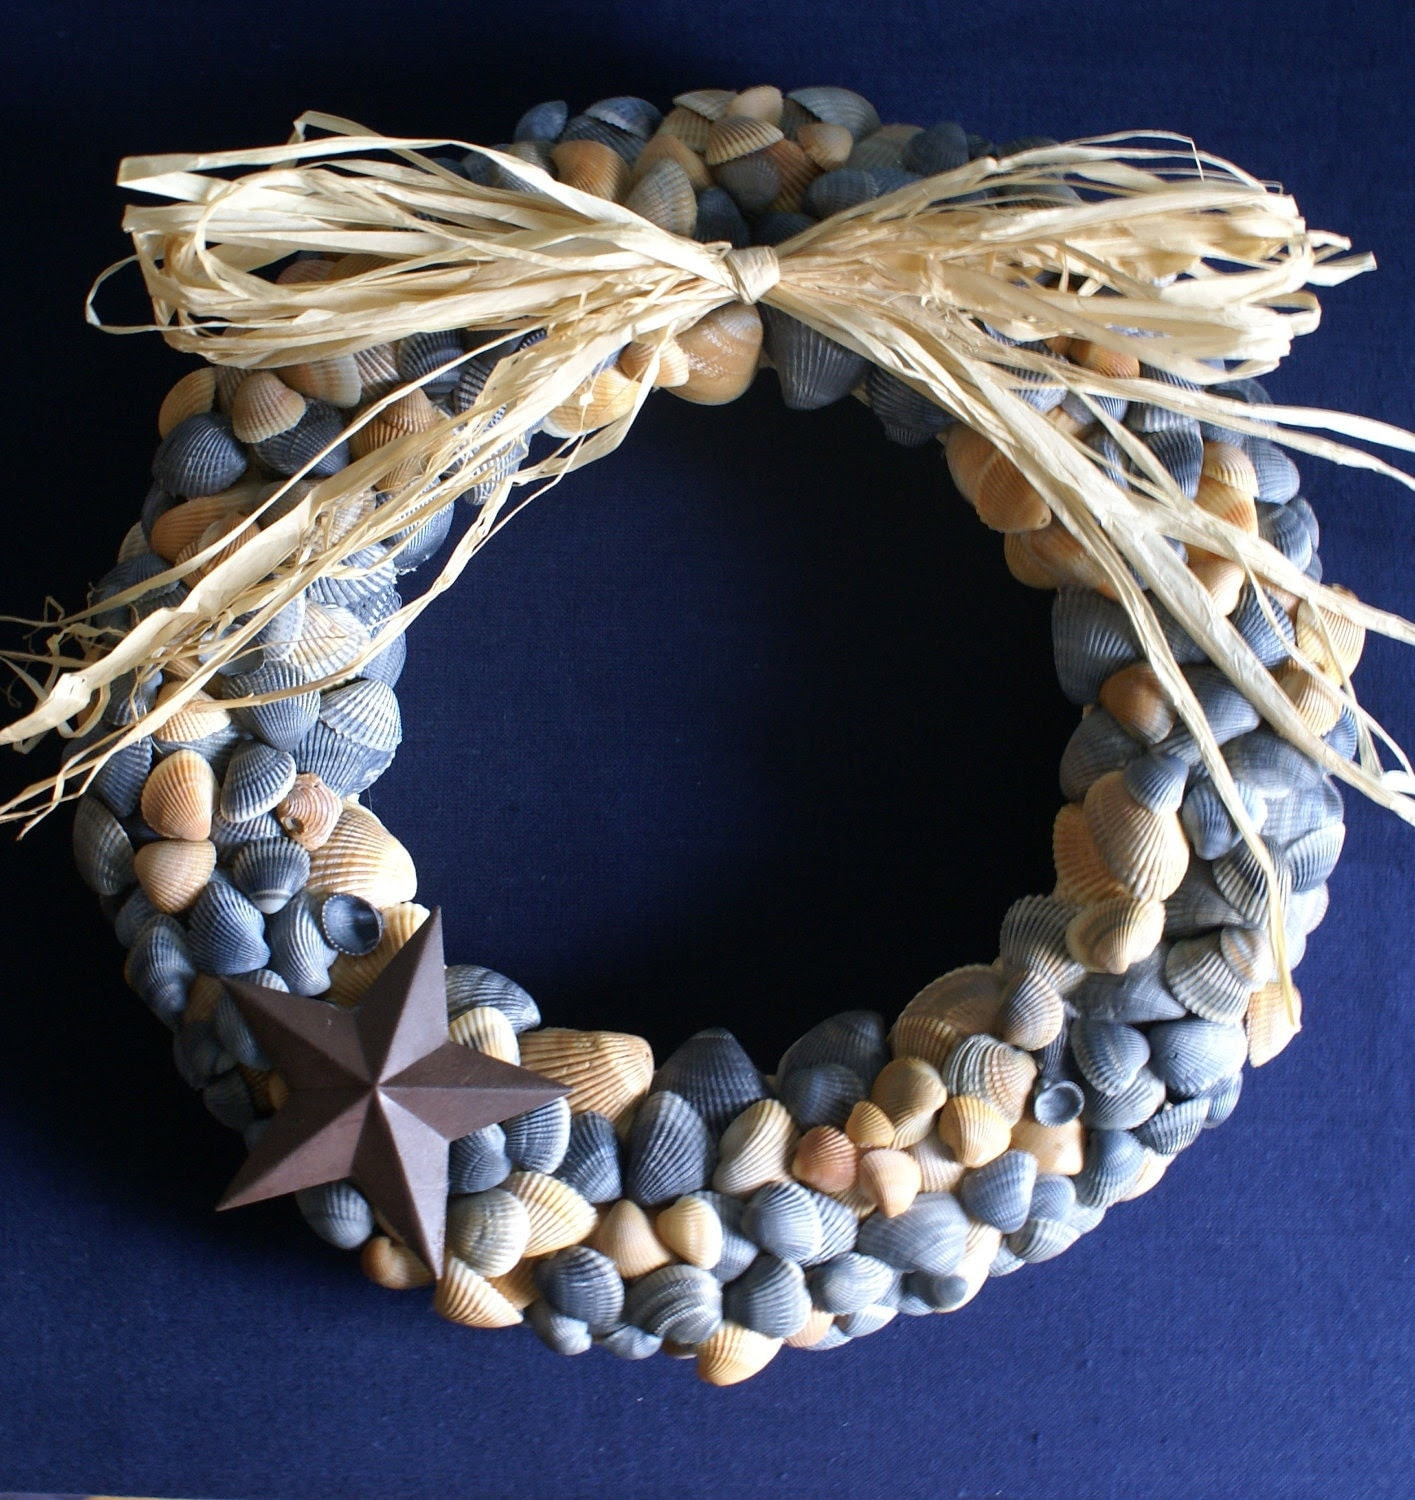 Seashell wreath 115 inches Texas Star Western style by JustShellin